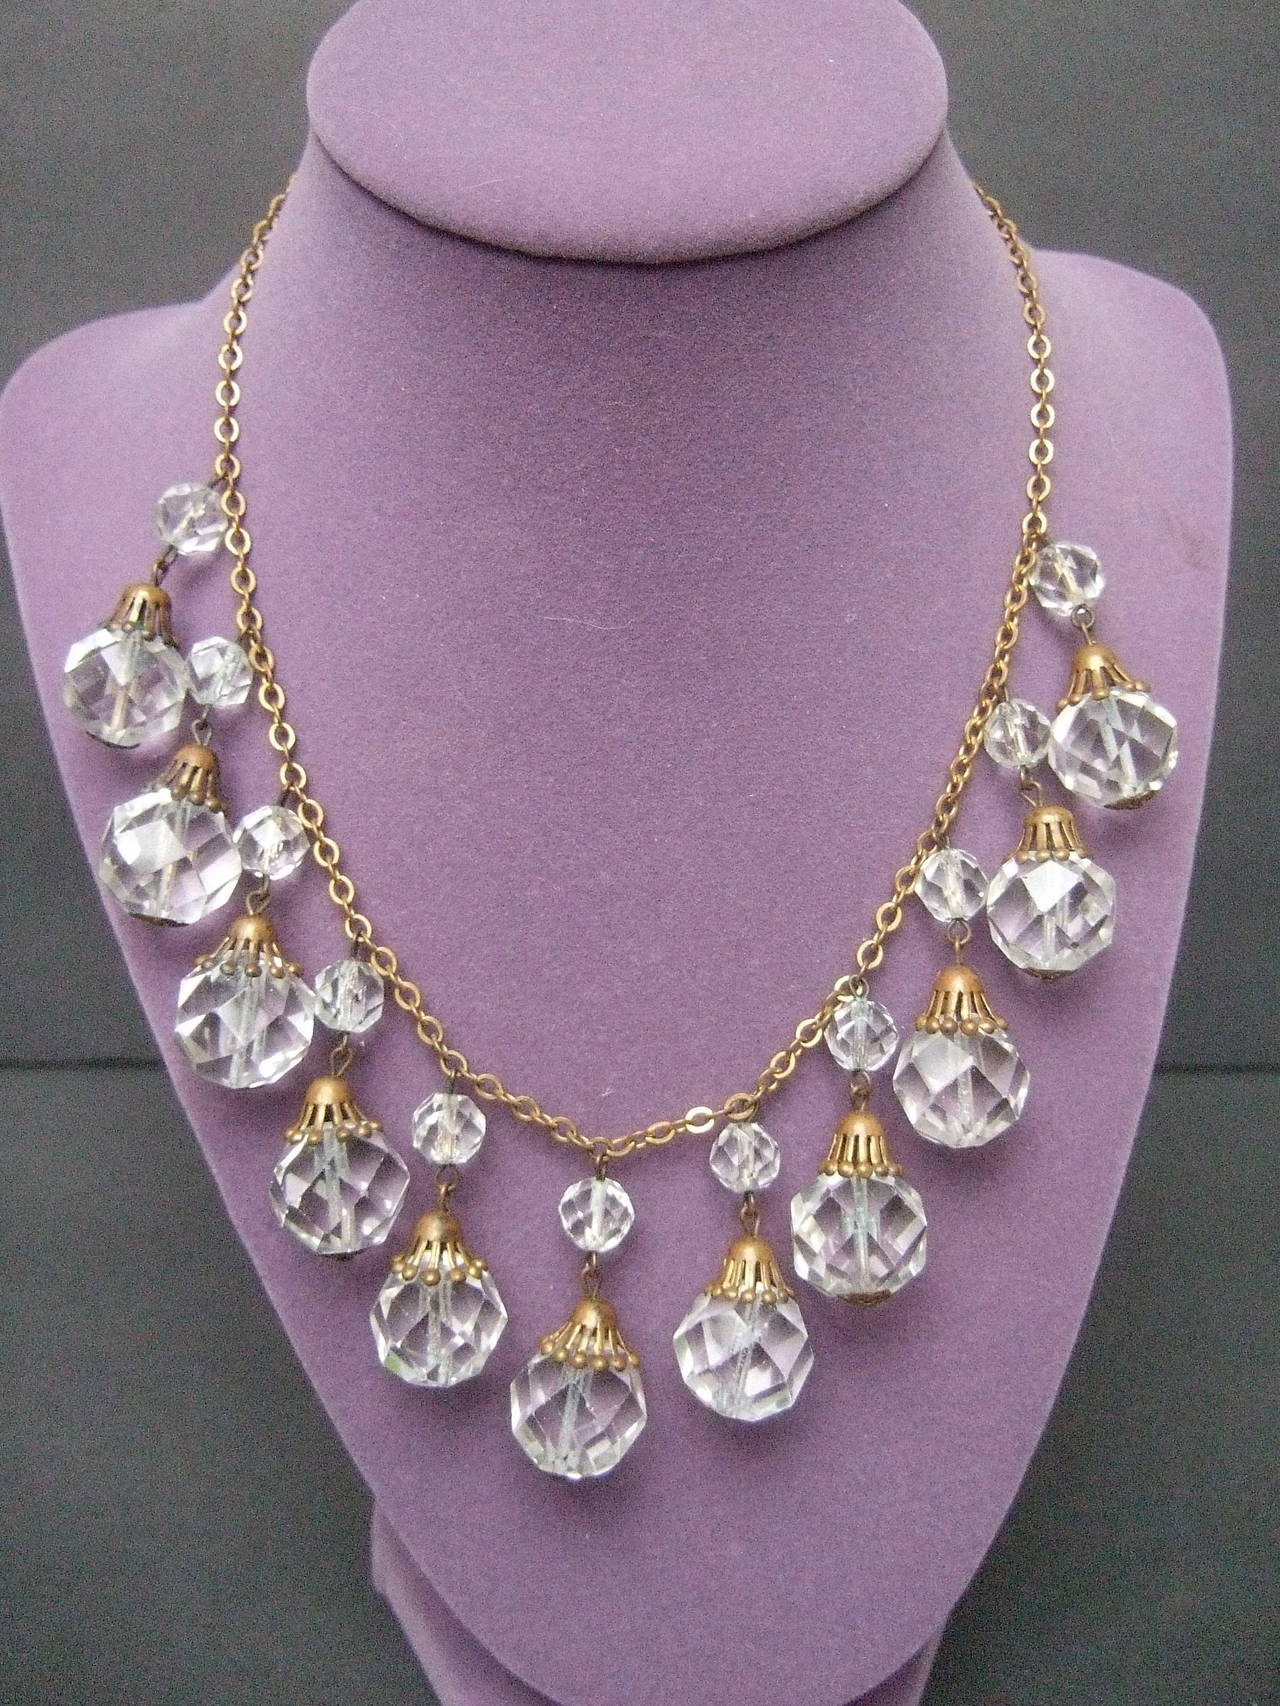 Opulent Art Deco Crystal Drop Necklace c 1940s 5